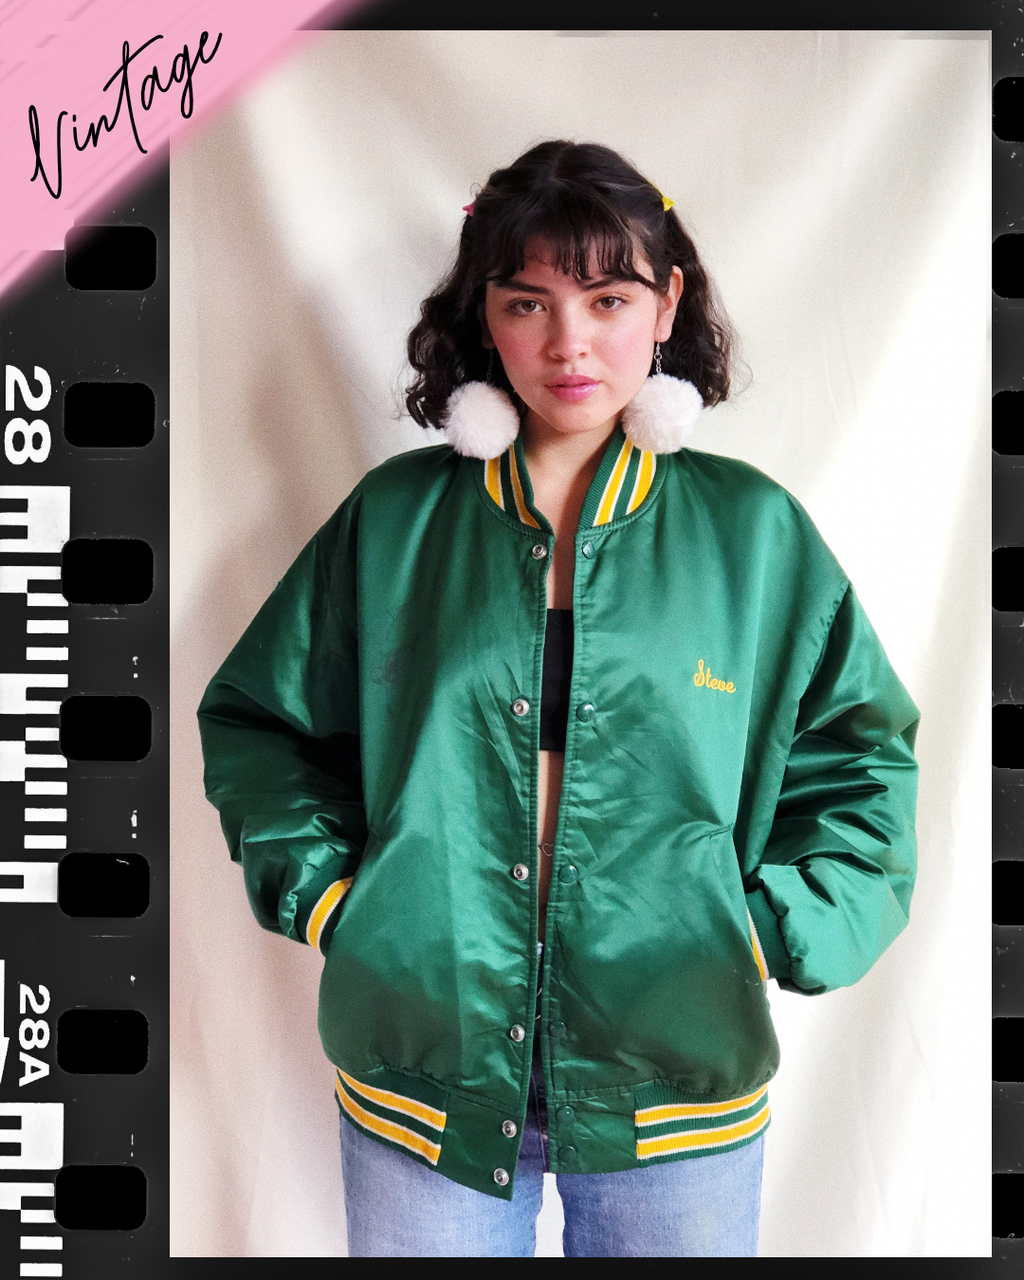 Boys Cry a lot Vintage Satin Jacket